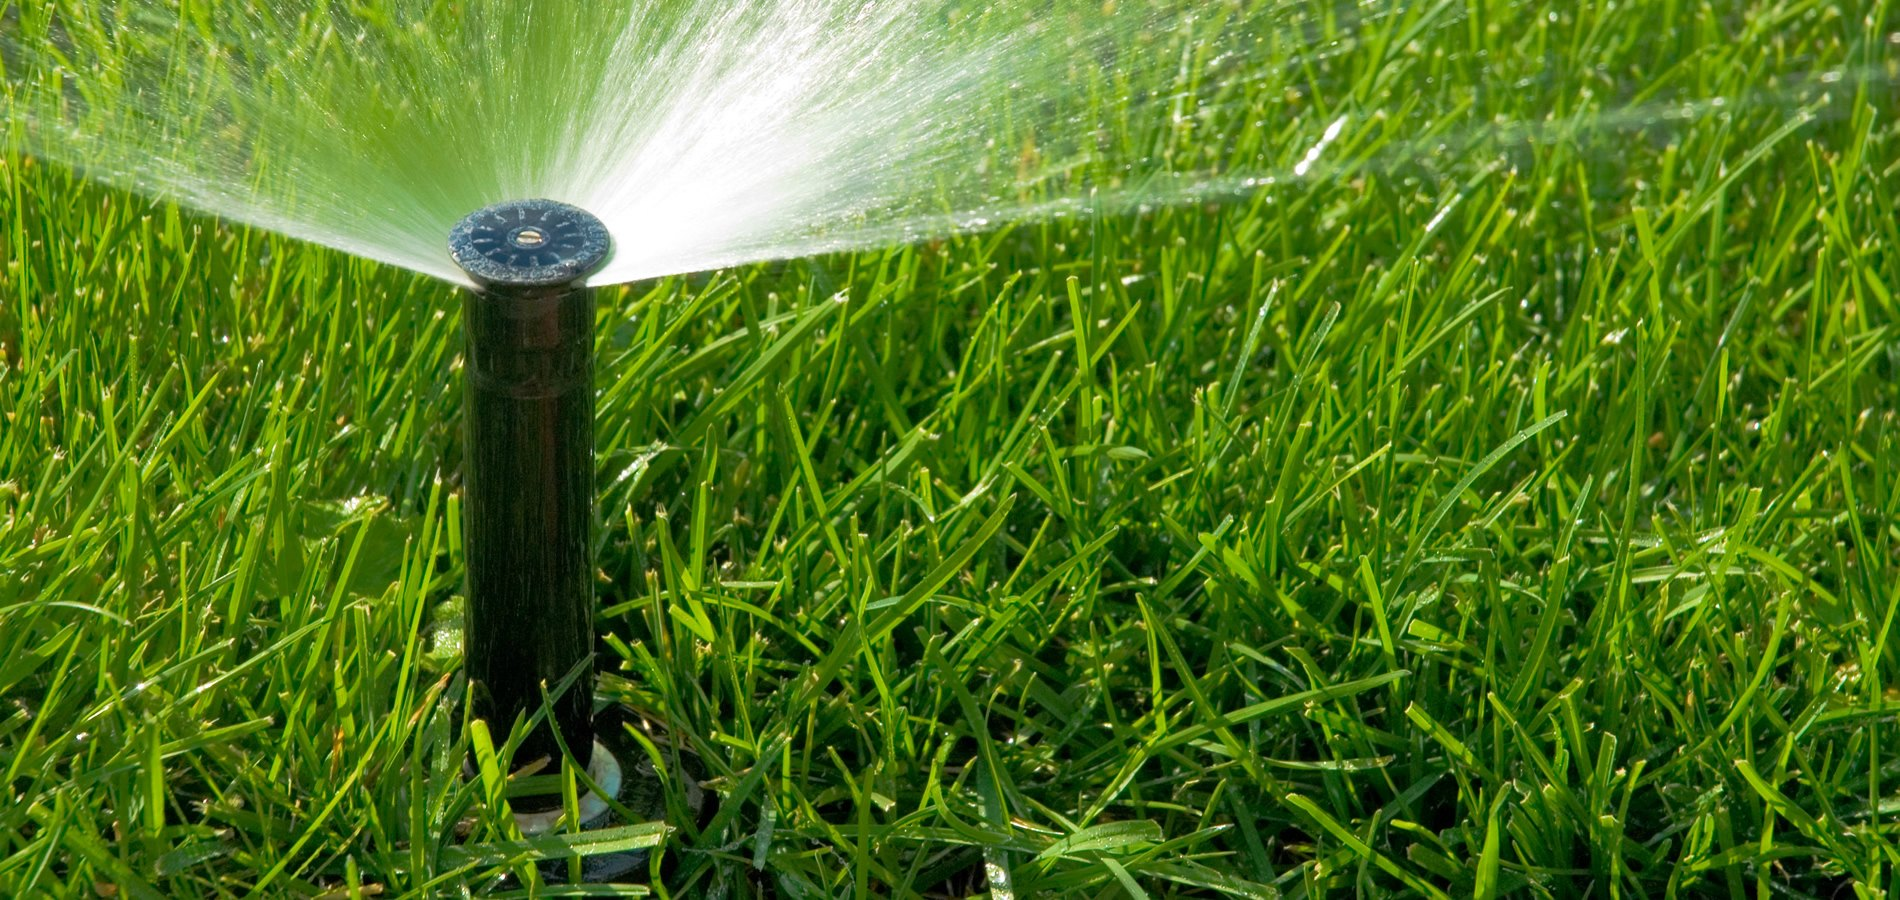 B&B Group Inc. Irrigation Services